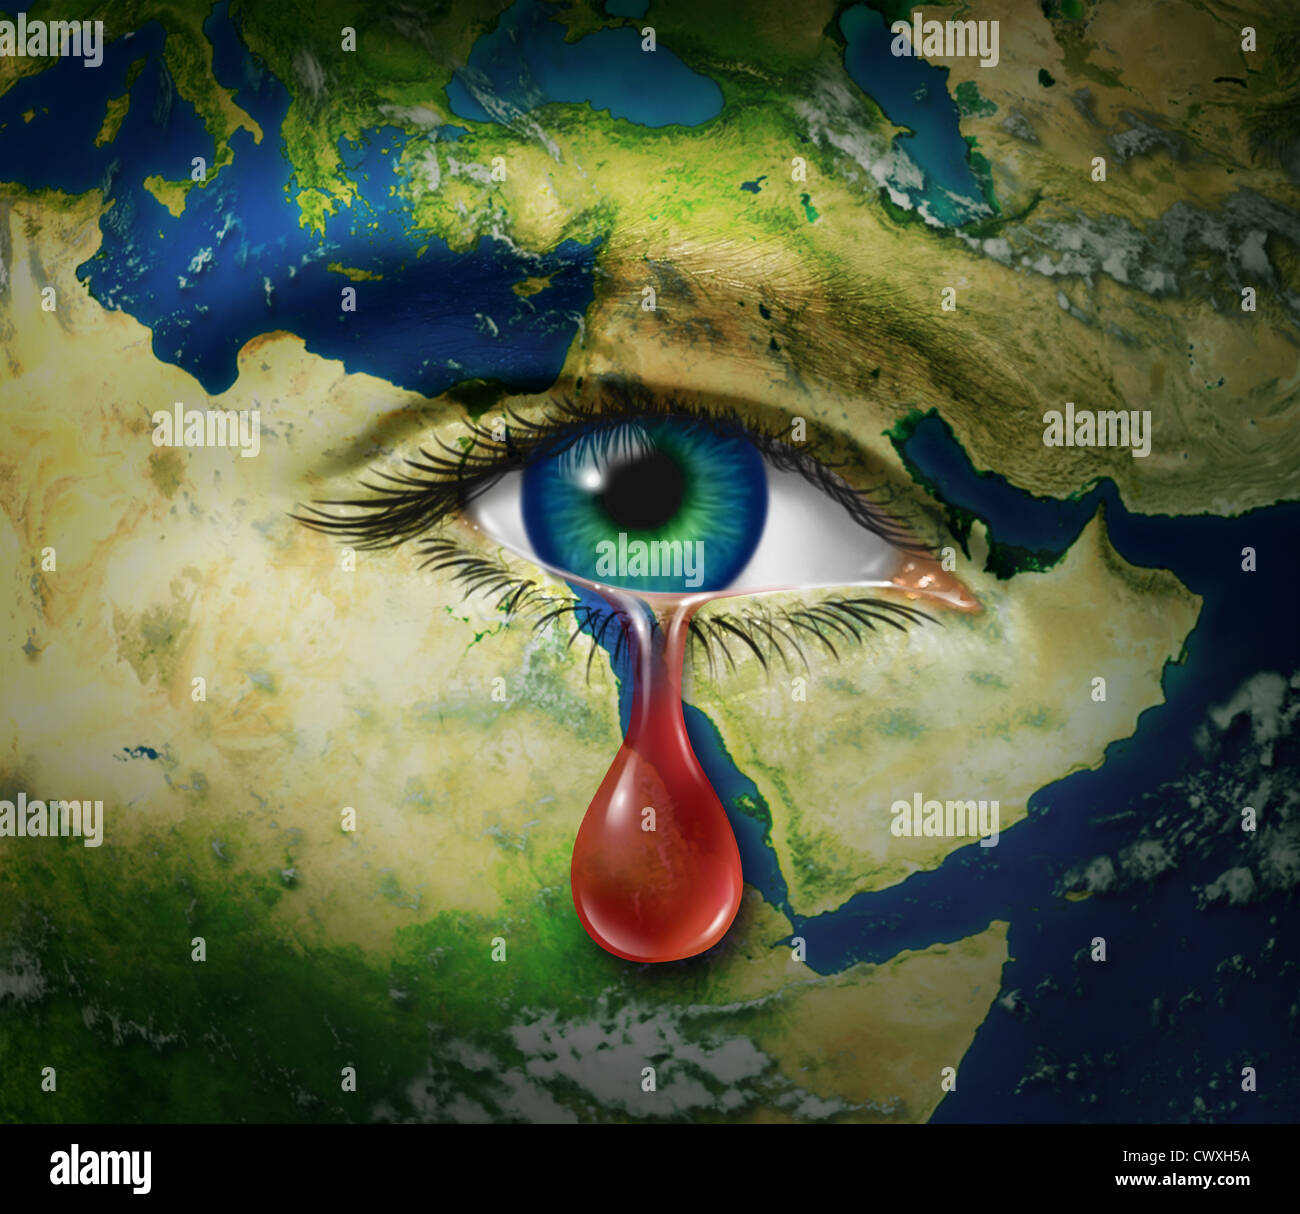 Violence in the middle east as a map of countries as egypt syria violence in the middle east as a map of countries as egypt syria iran israel saudi arabia libya yemen iraq with an eye that is crying a red tear of blood as gumiabroncs Choice Image